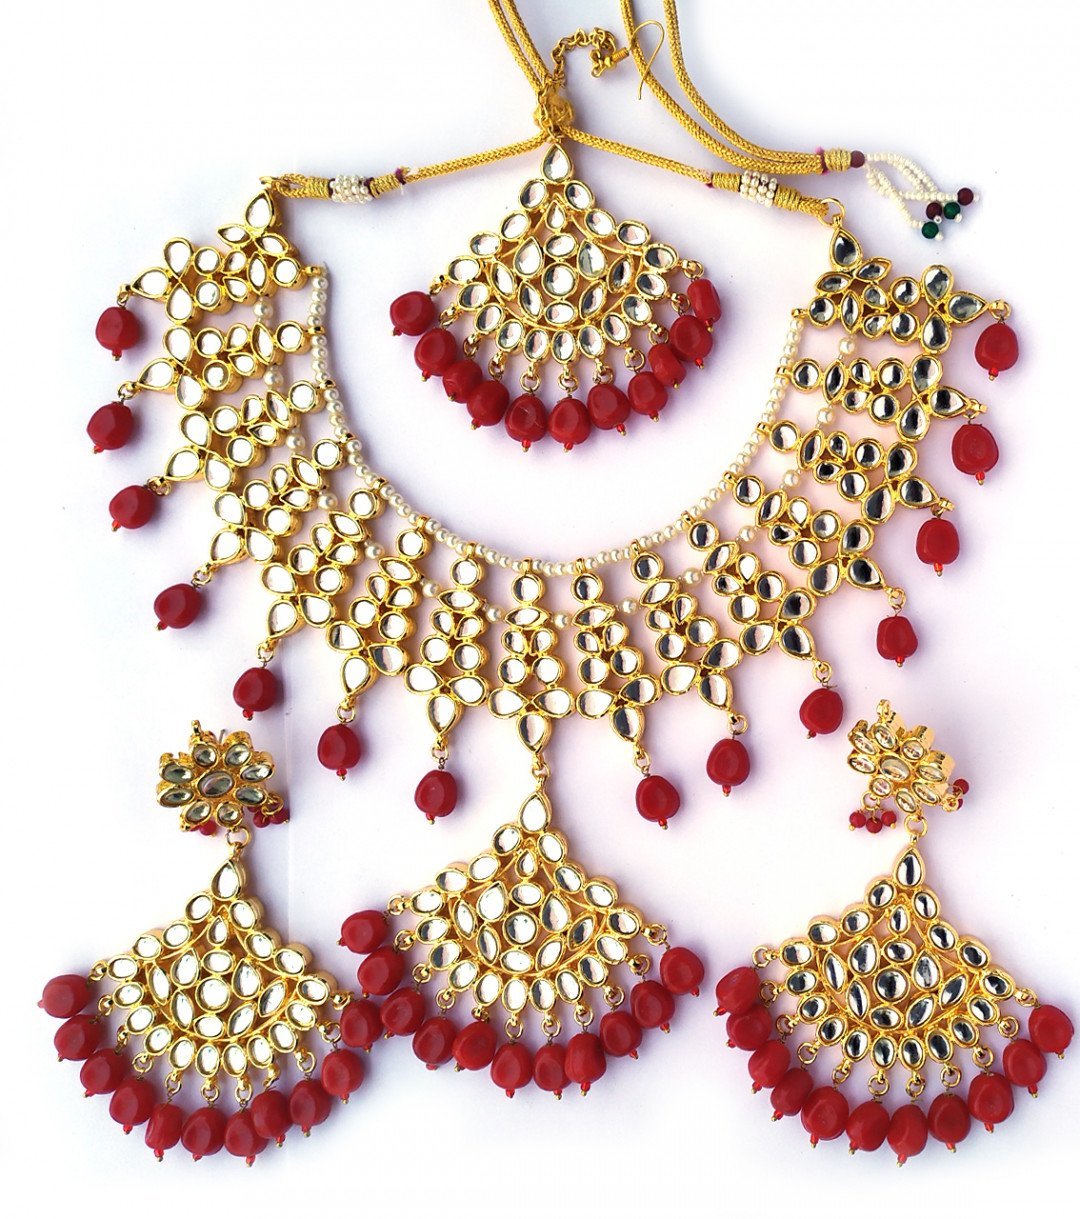 High quality kundan necklace sets for women & girls